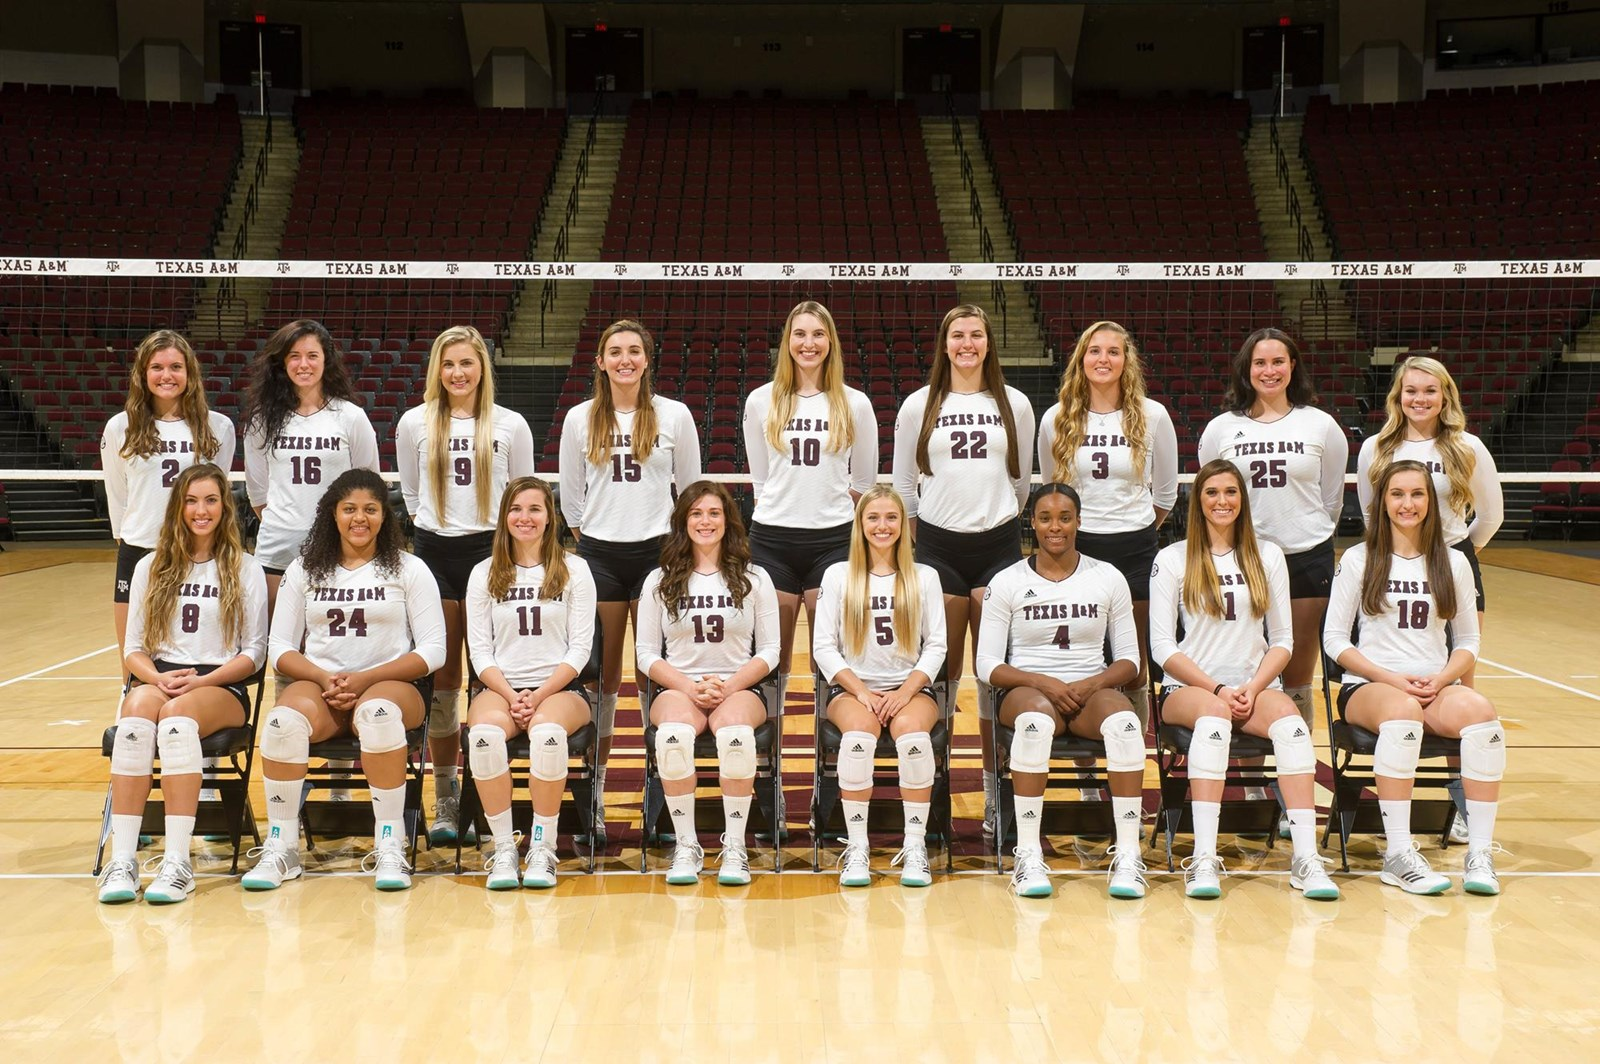 2017 Volleyball Roster Texas A M Athletics Home Of The 12th Man